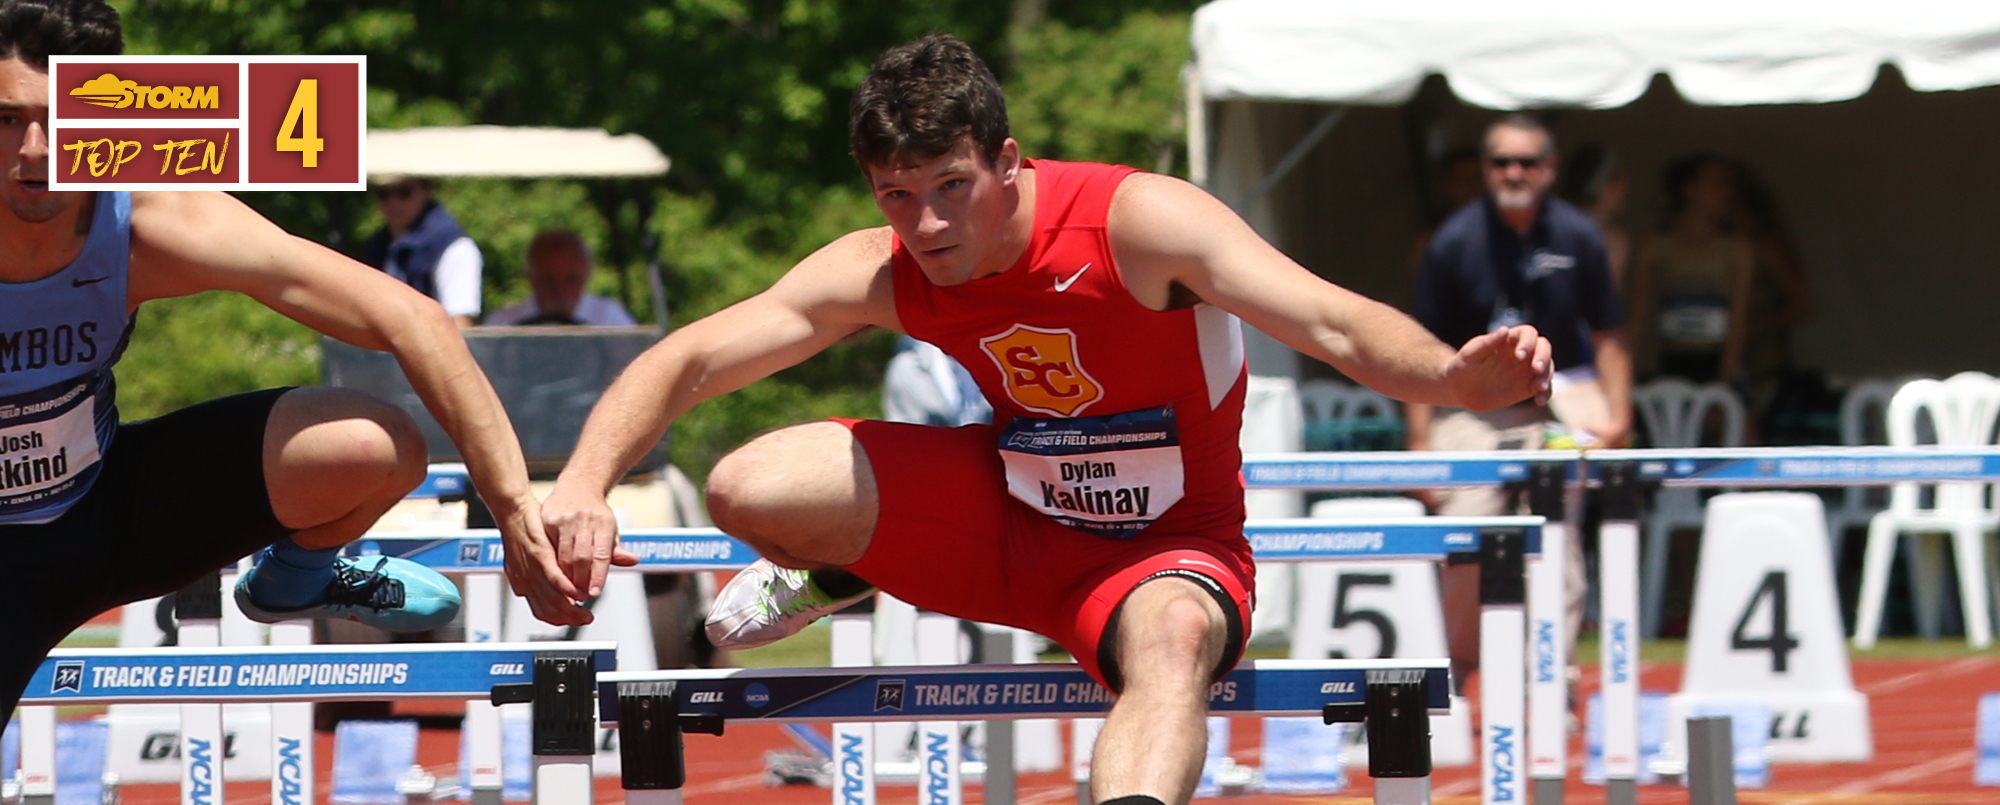 #StormTop10 Individual Performances No. 4: Kalinay breaks 26-year old hurdle record